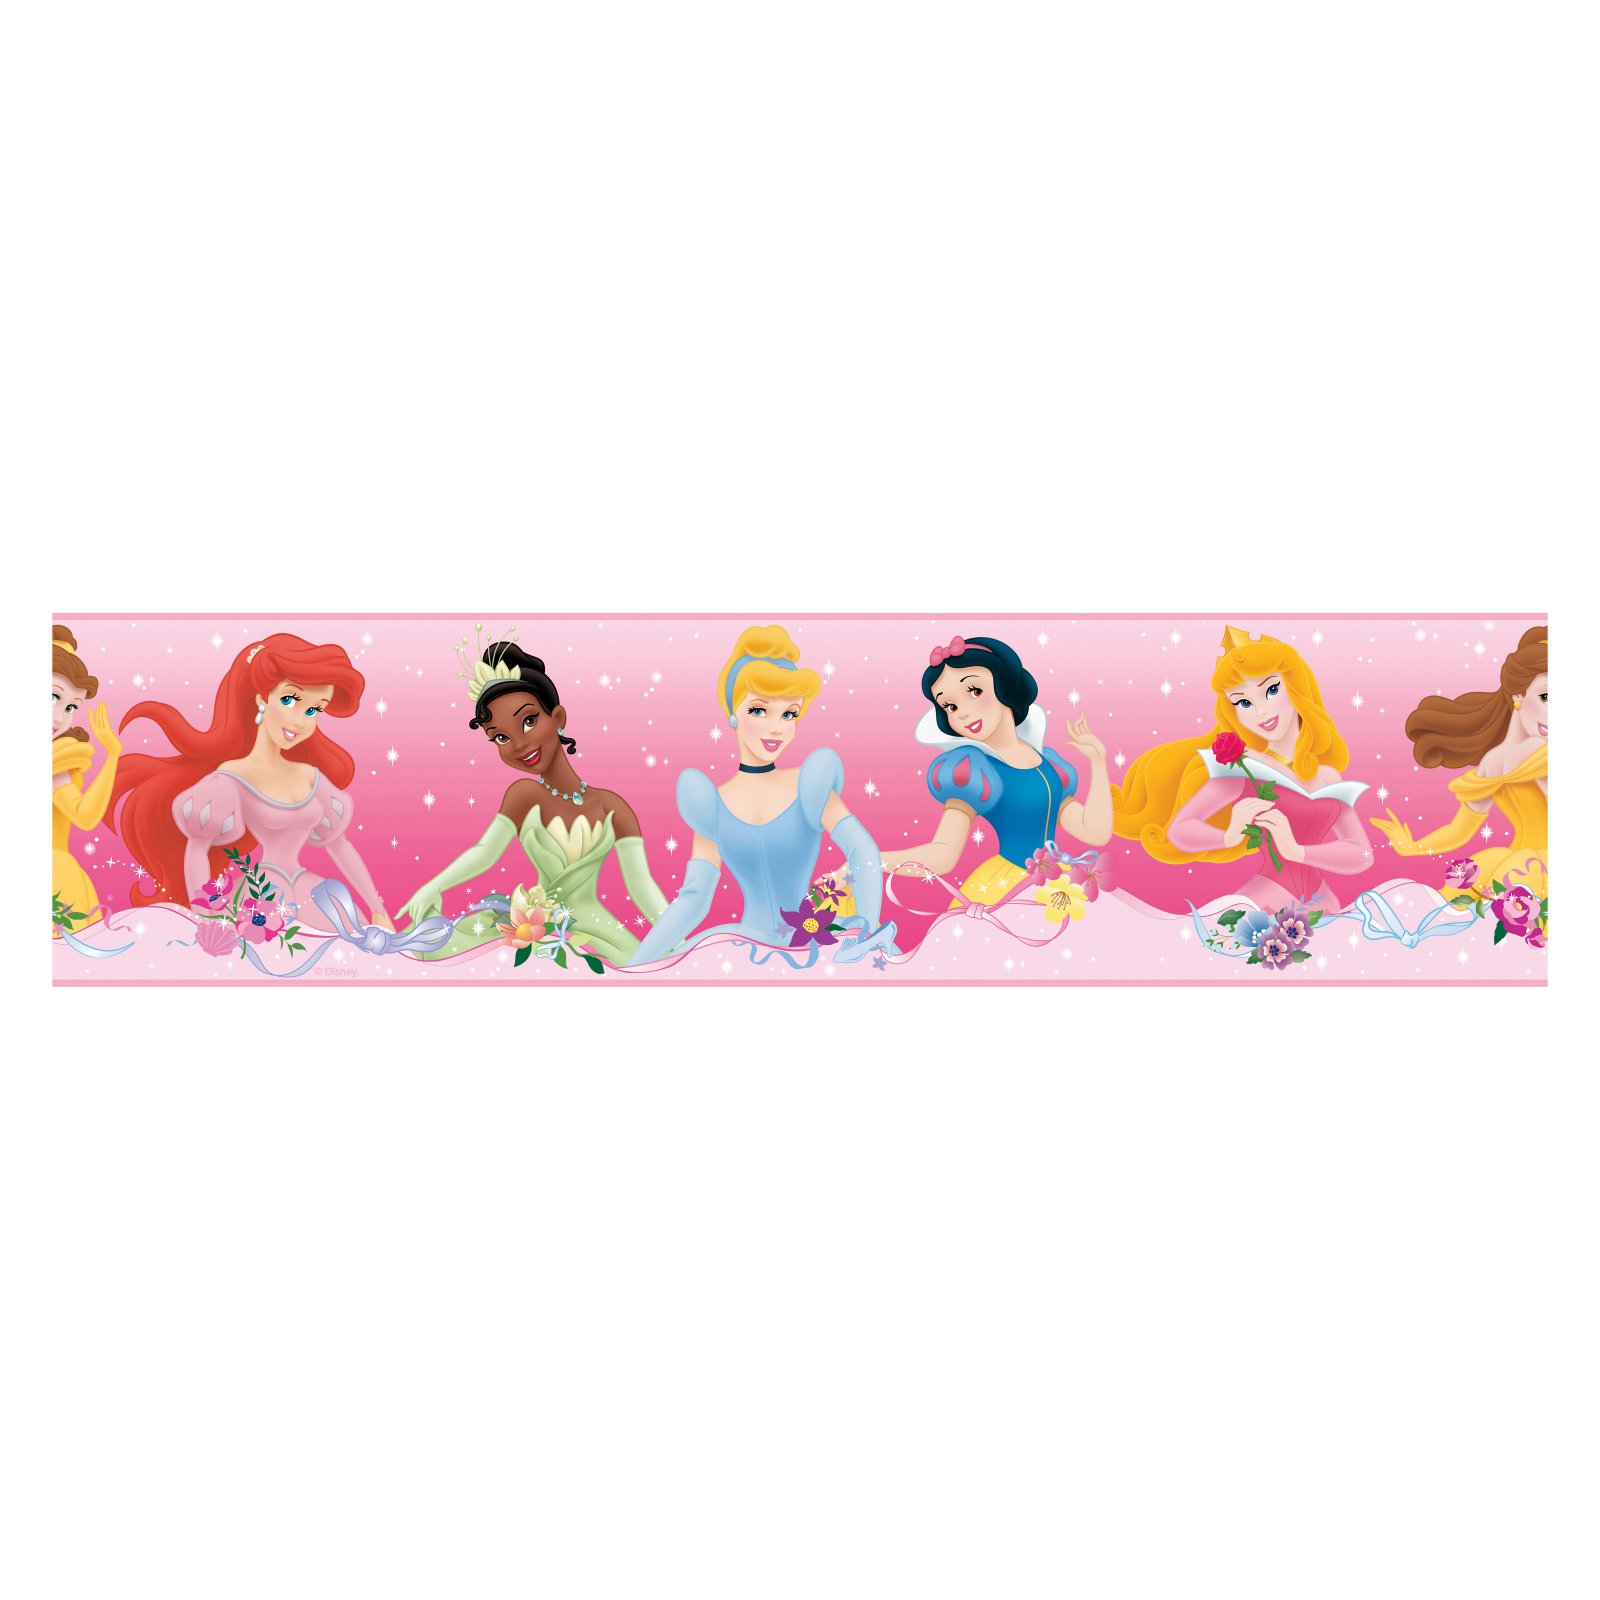 RoomMates Disney Princess Dream from the Heart Purple Peel and Stick Border